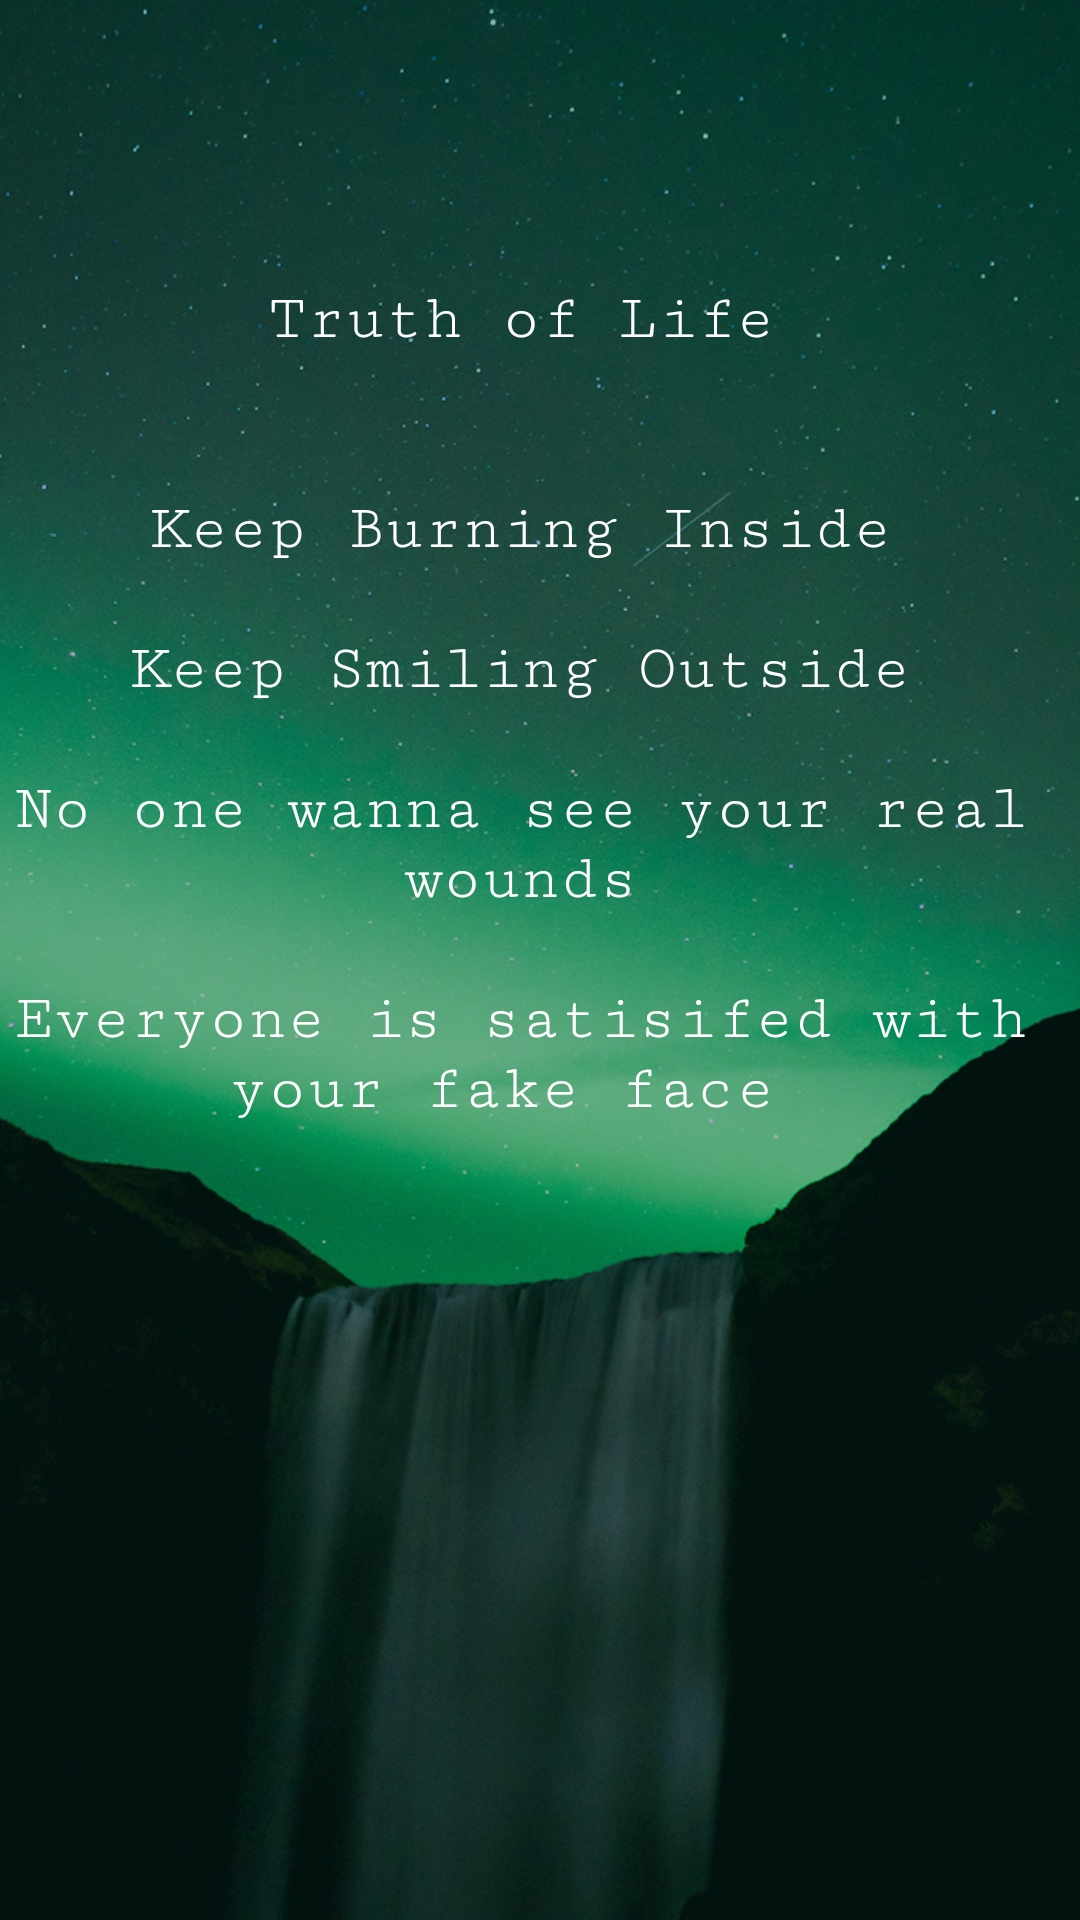 Truth of Life    Keep Burning Inside  Keep Smiling Outside  No one wanna see your real wounds  Everyone is satisifed with your fake face